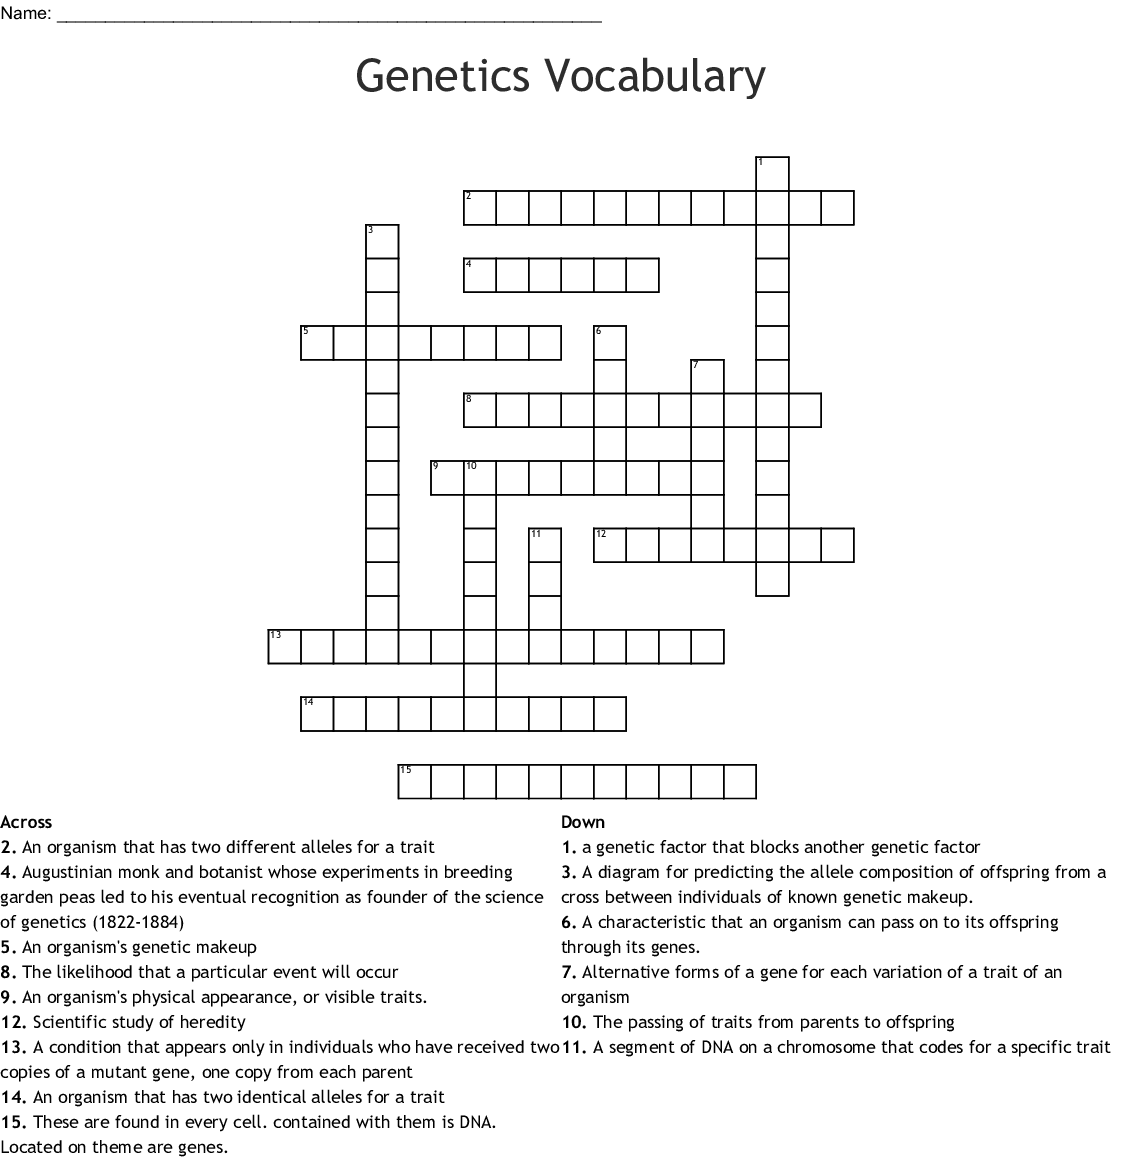 Genetics Word Search - WordMint